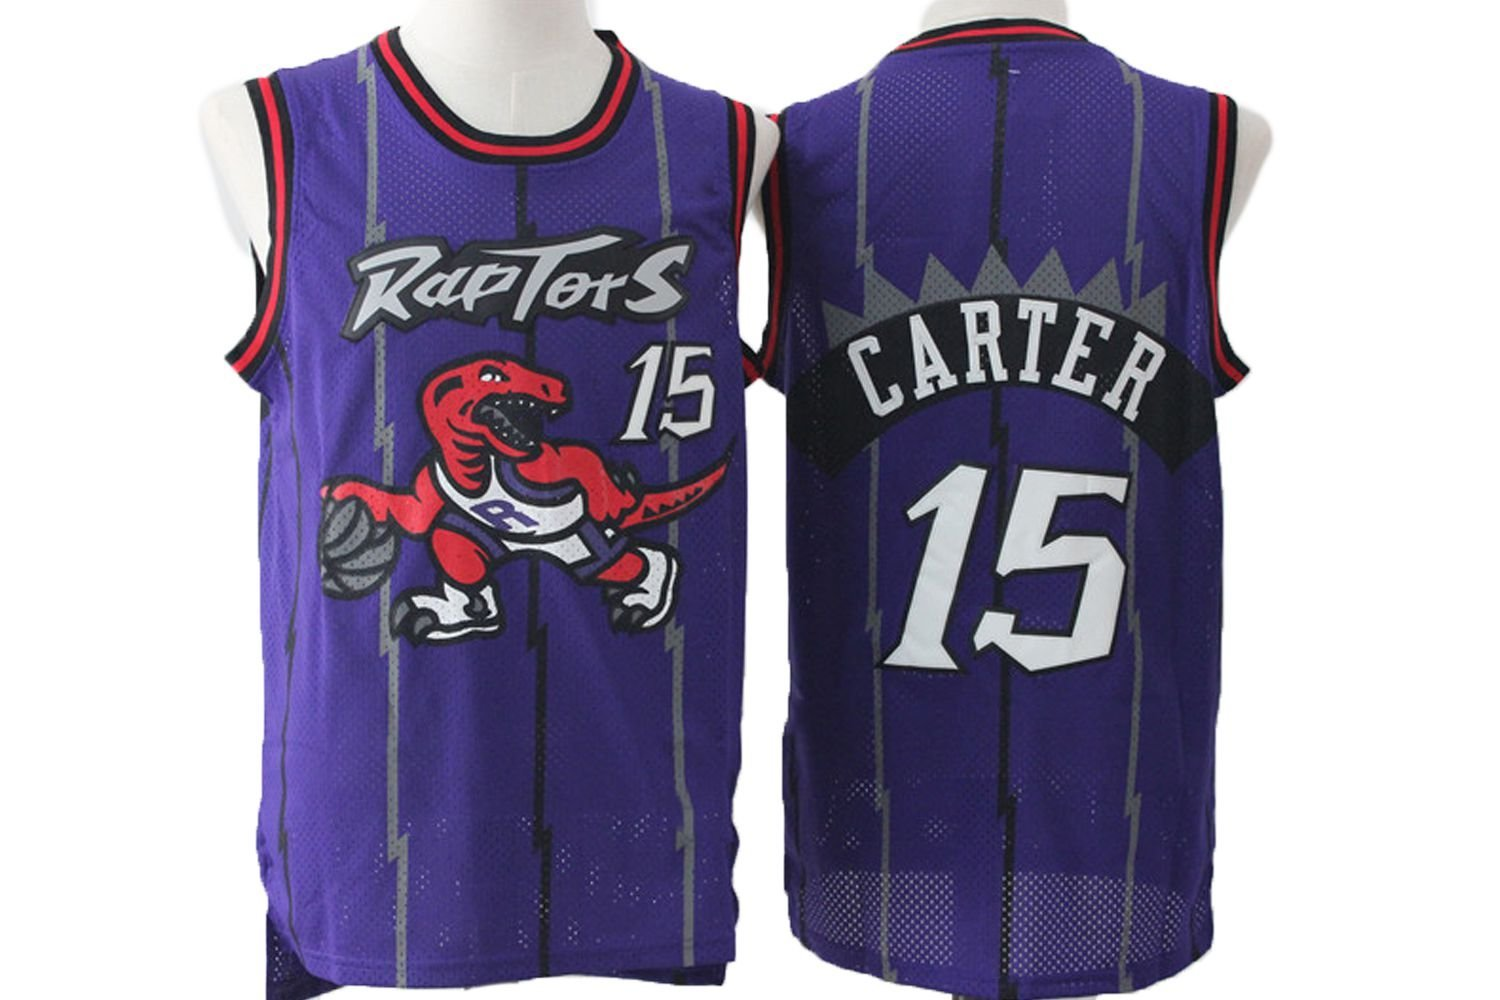 new concept 3f8f9 e3f8e Buy Vince Carter #15 Toronto Raptors Purple Throwback Jersey ...